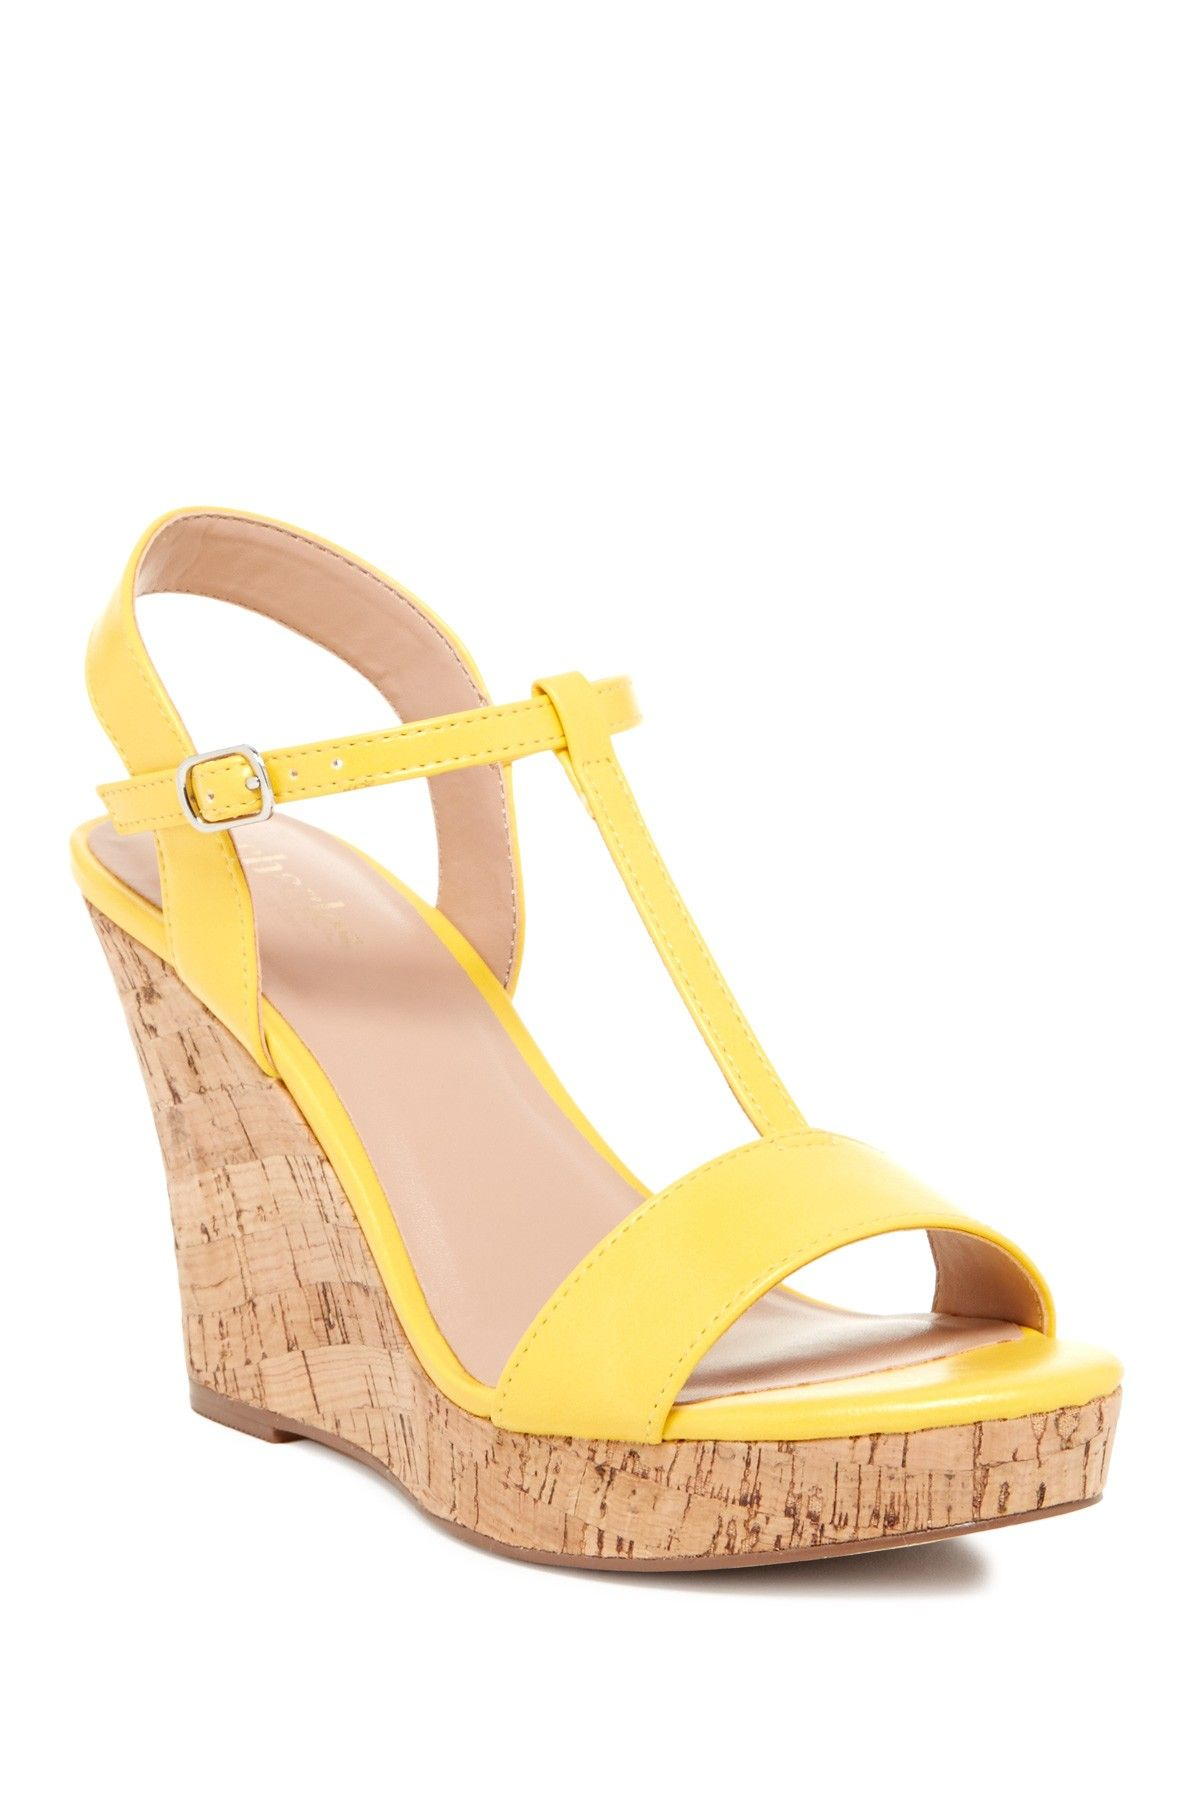 88d87c8aeef cute yellow wedges Yellow Wedges